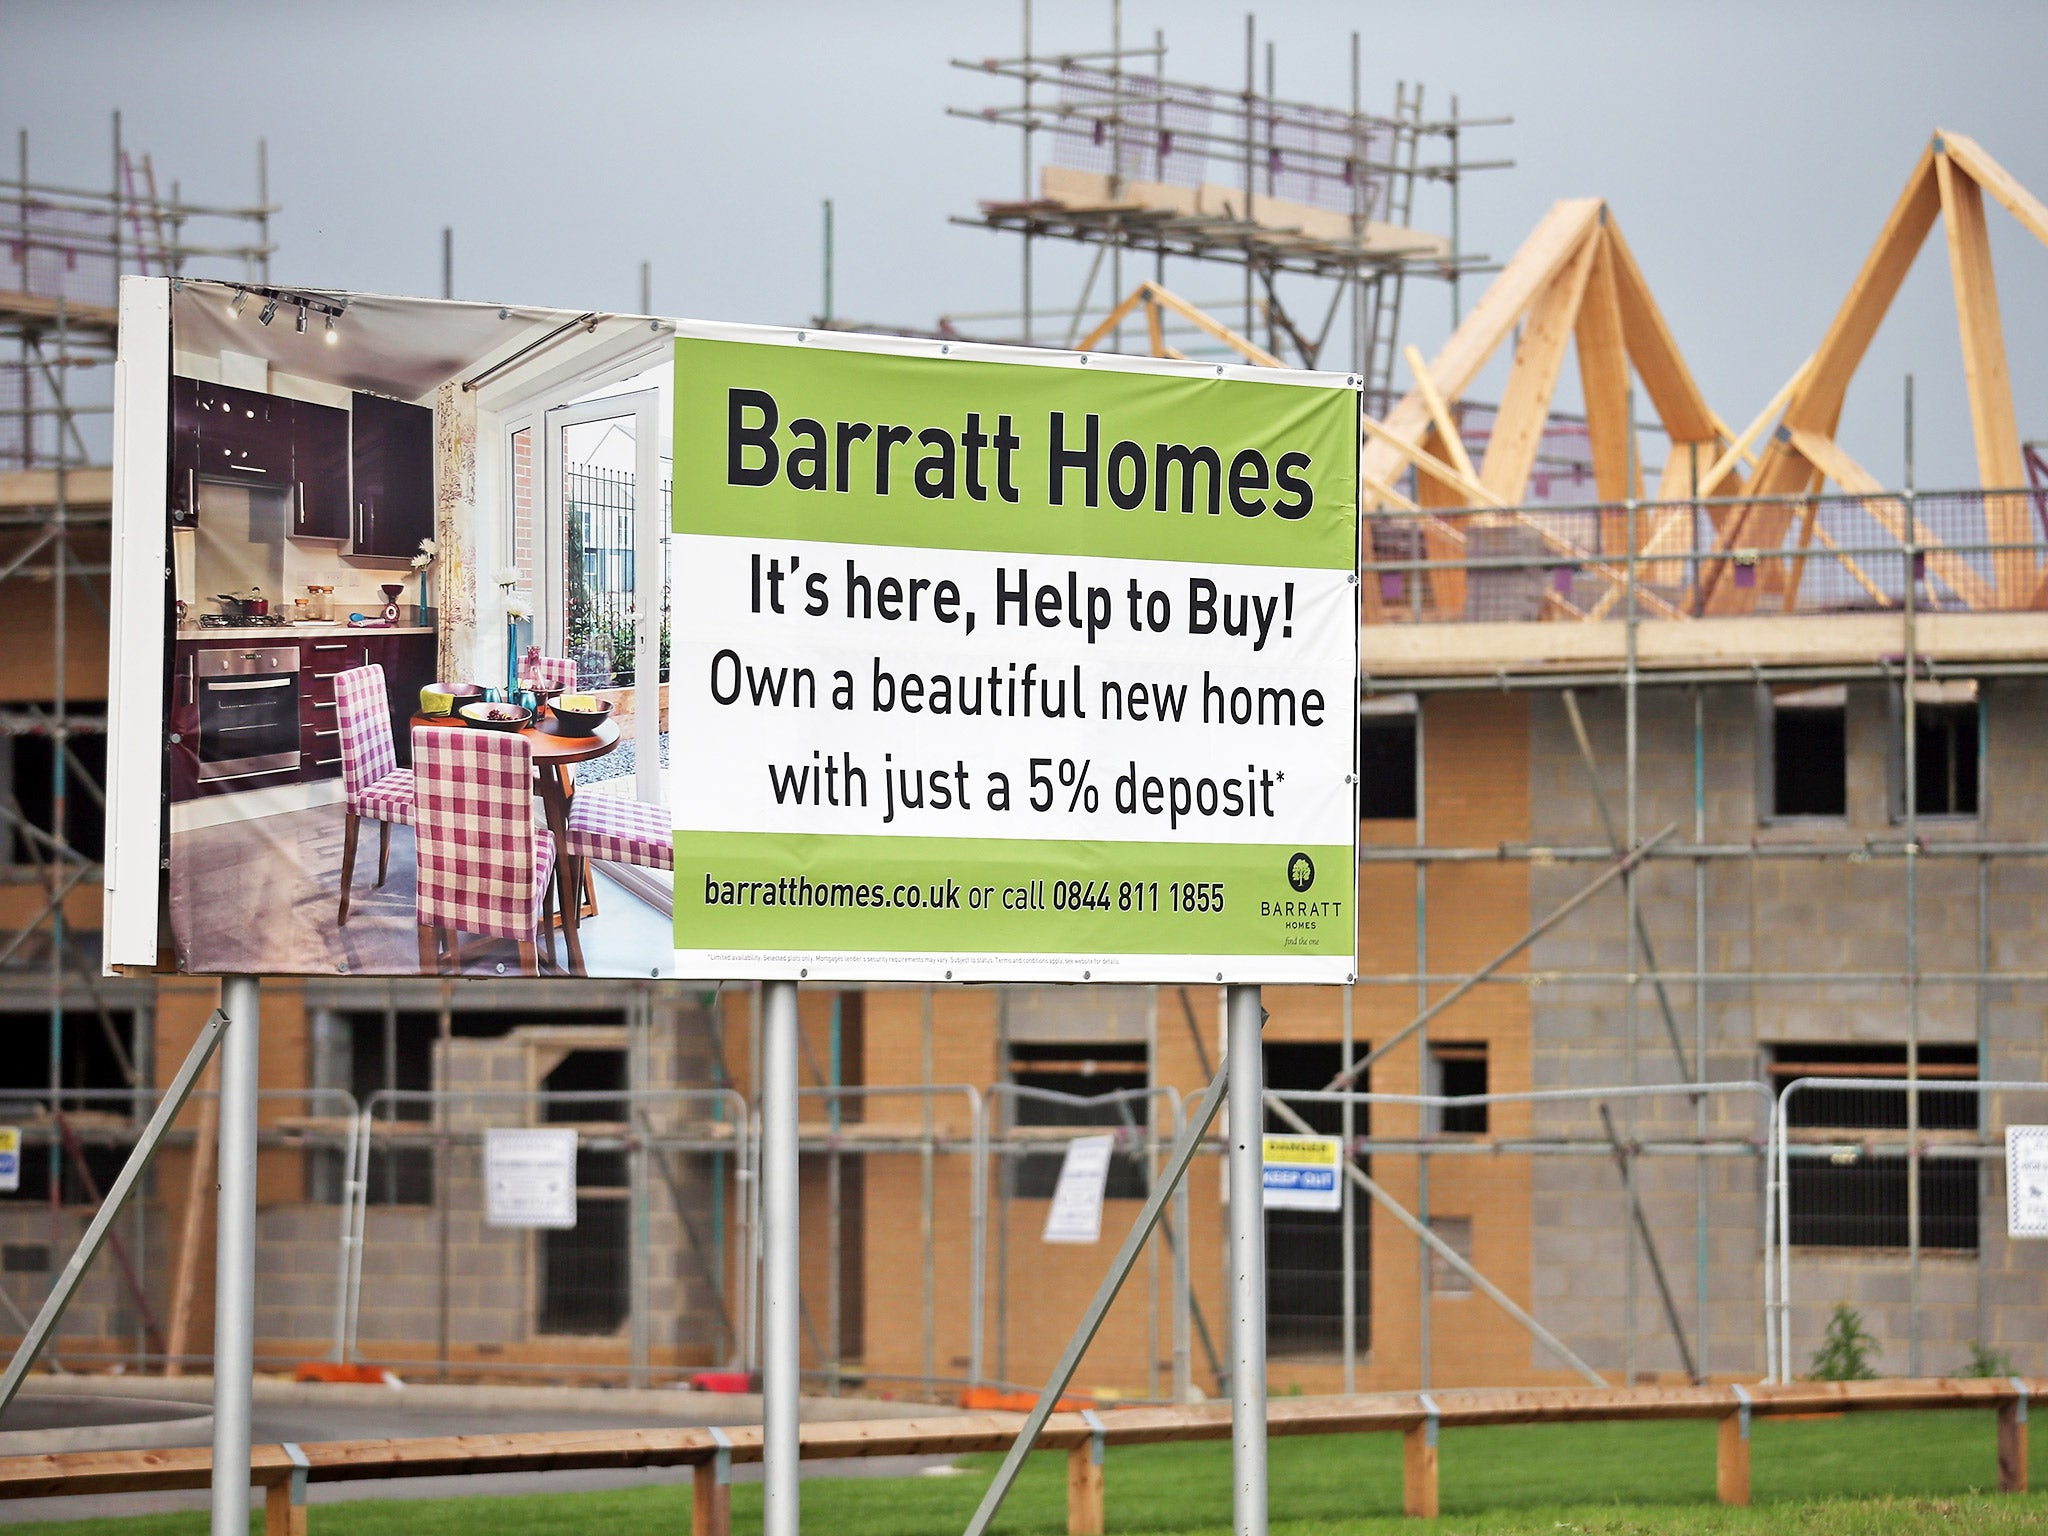 uk housebuilders restricting the supply of new houses to keep